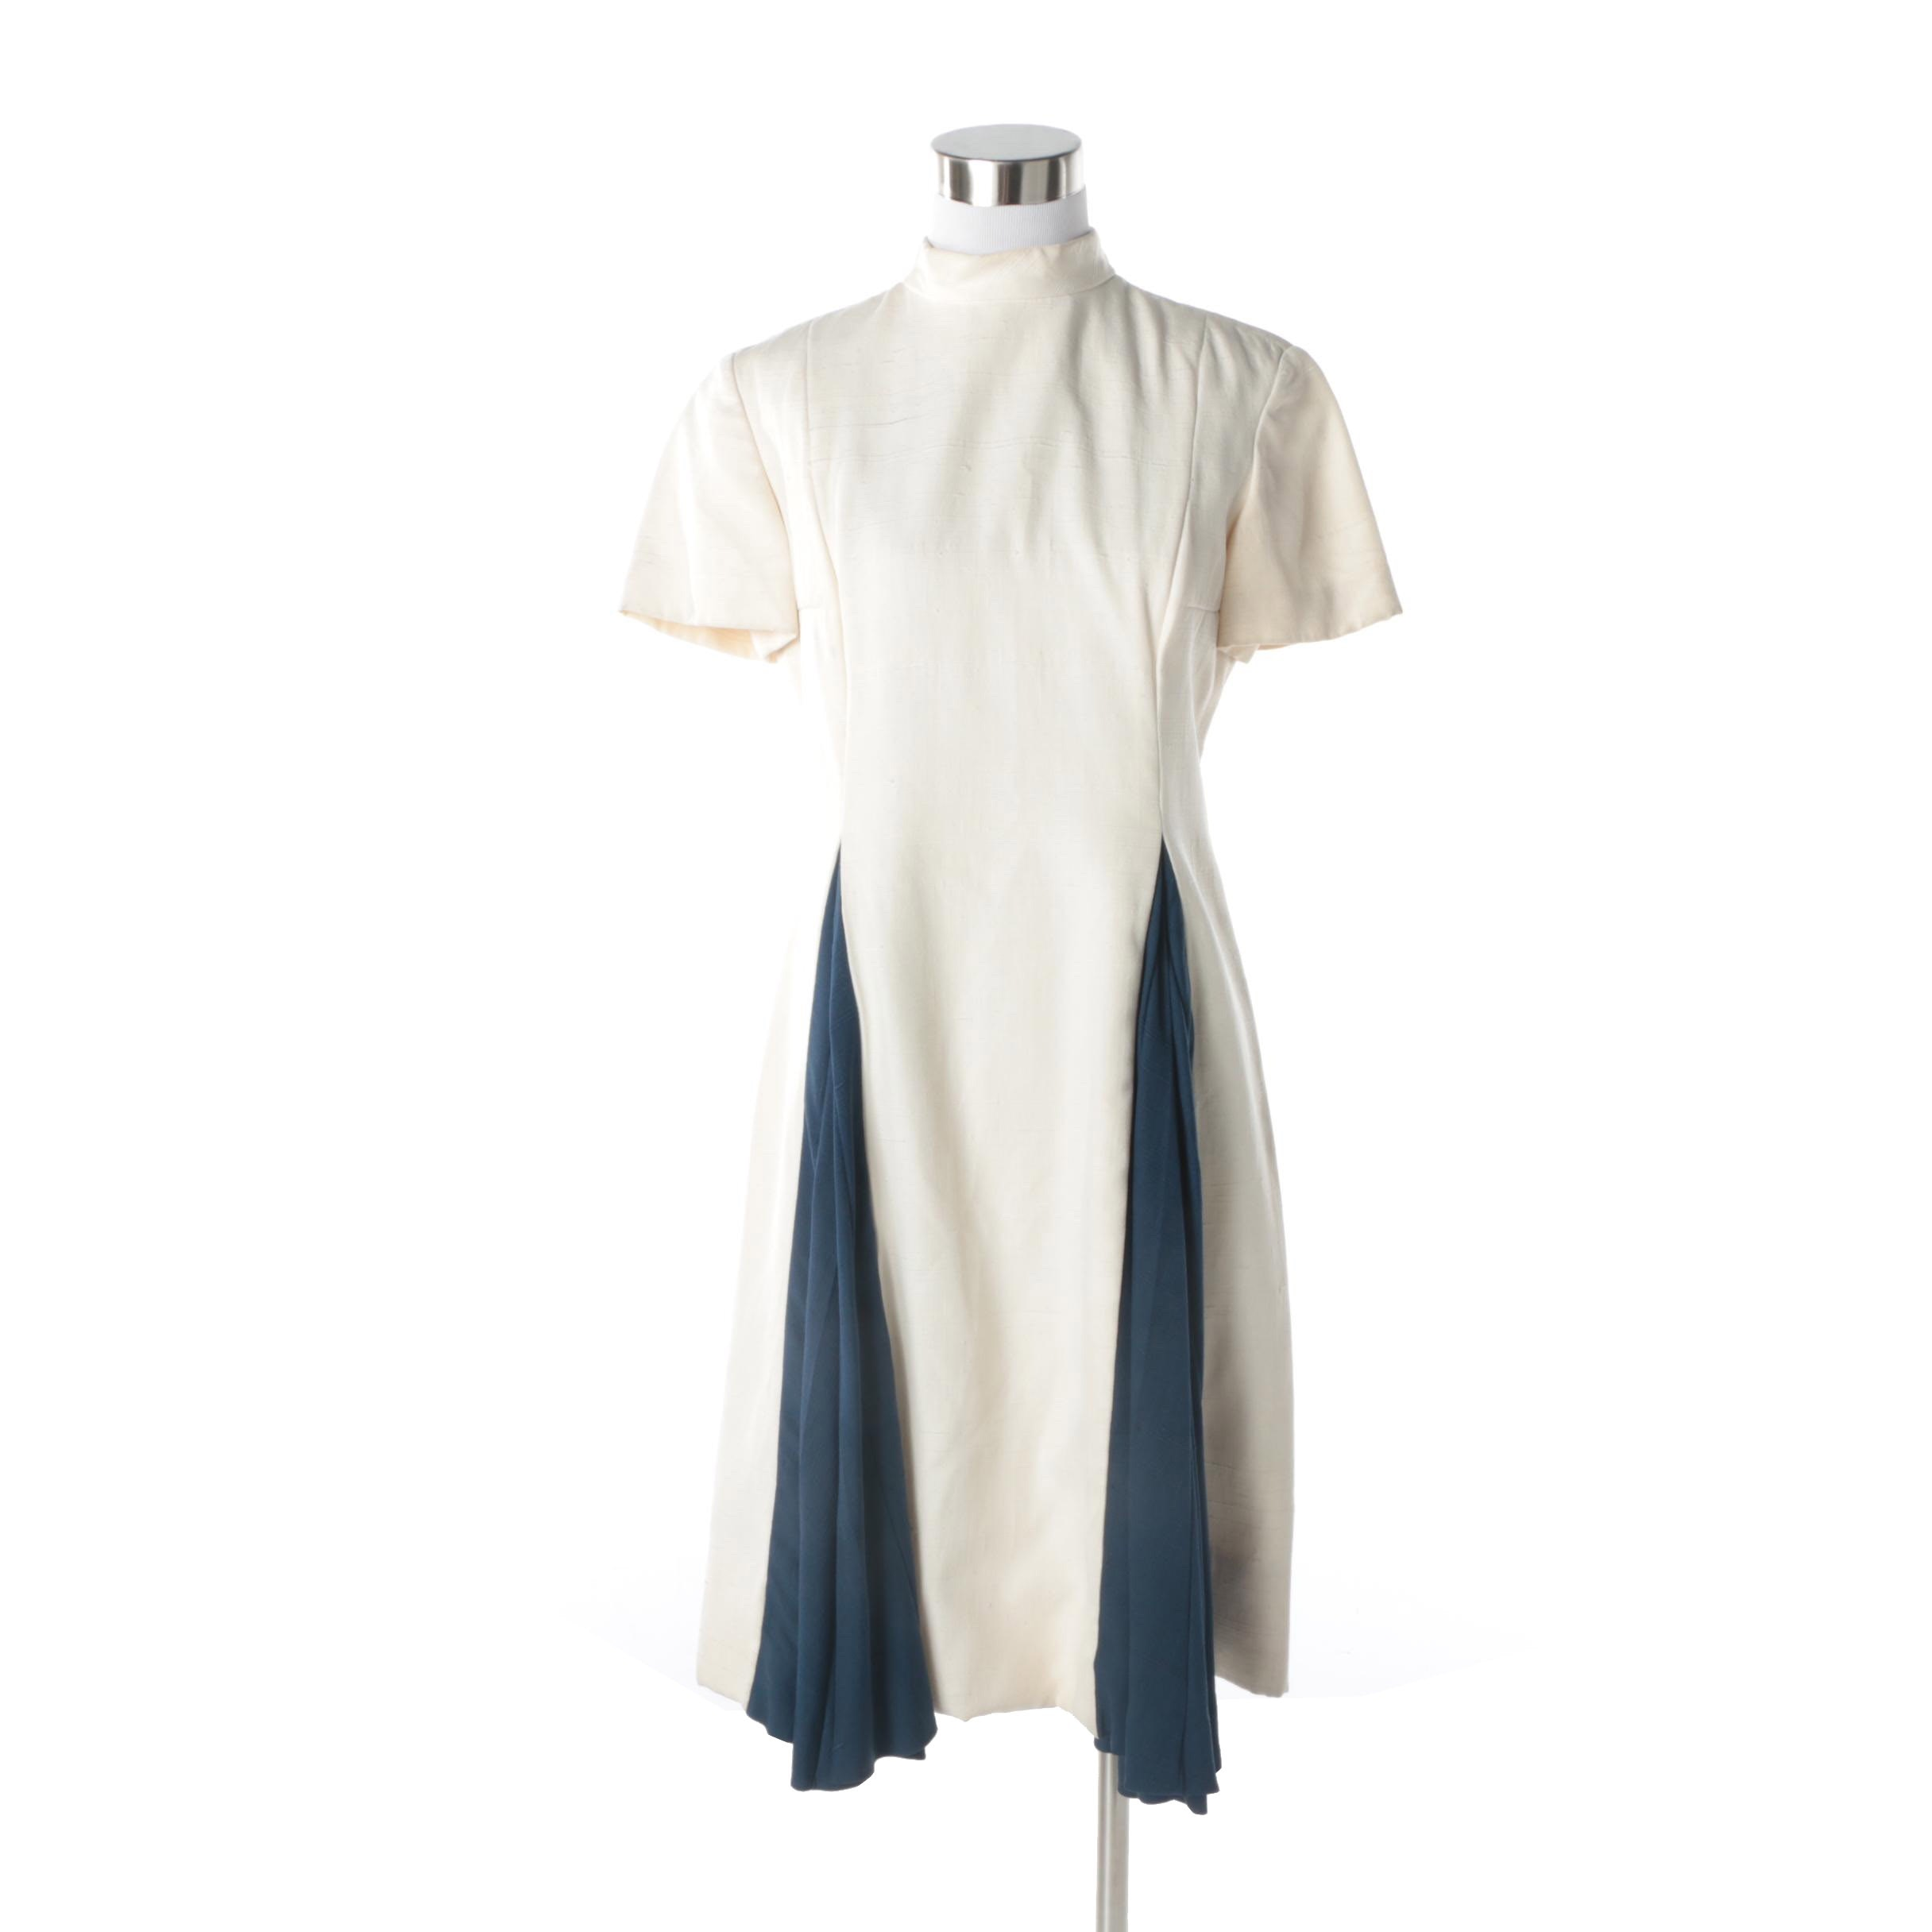 1960s Bill Blass for Maurice Rentner Ivory Linen Dress With Navy Accent Pleats